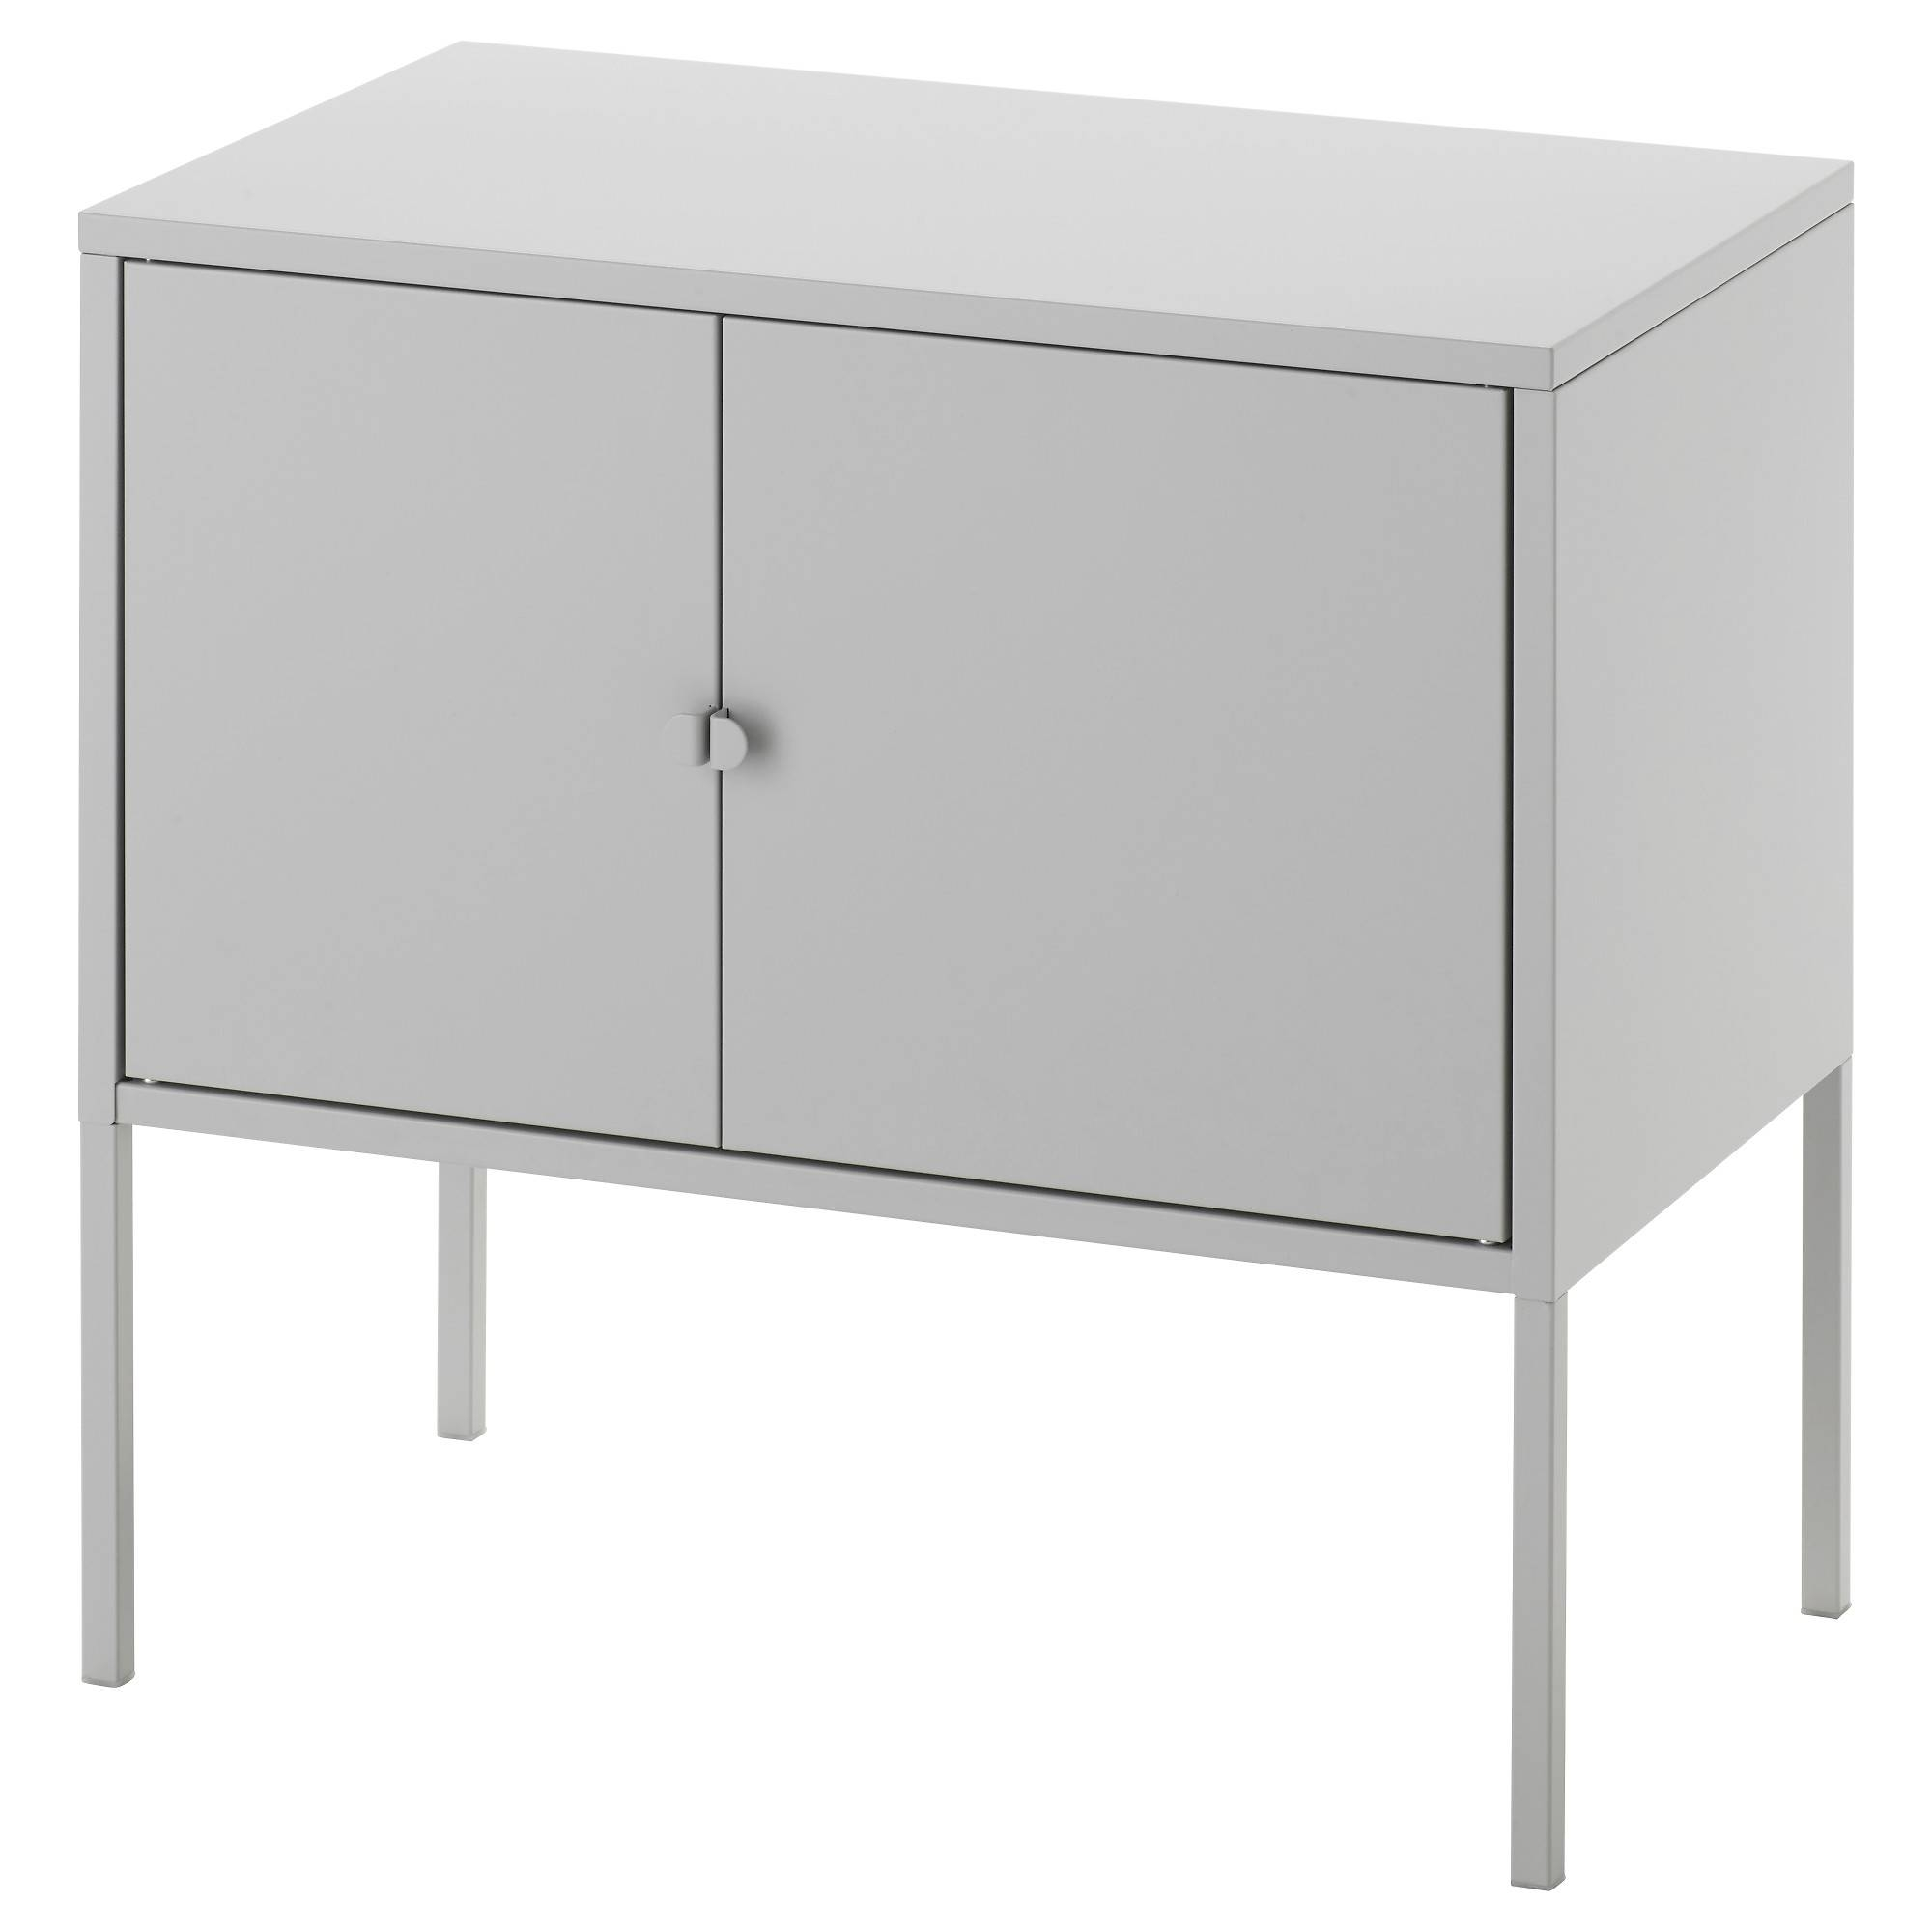 Lixhult Cabinet Metal/grey 60X35 Cm – Ikea Throughout Most Recently Released Ikea Sideboards (#10 of 15)